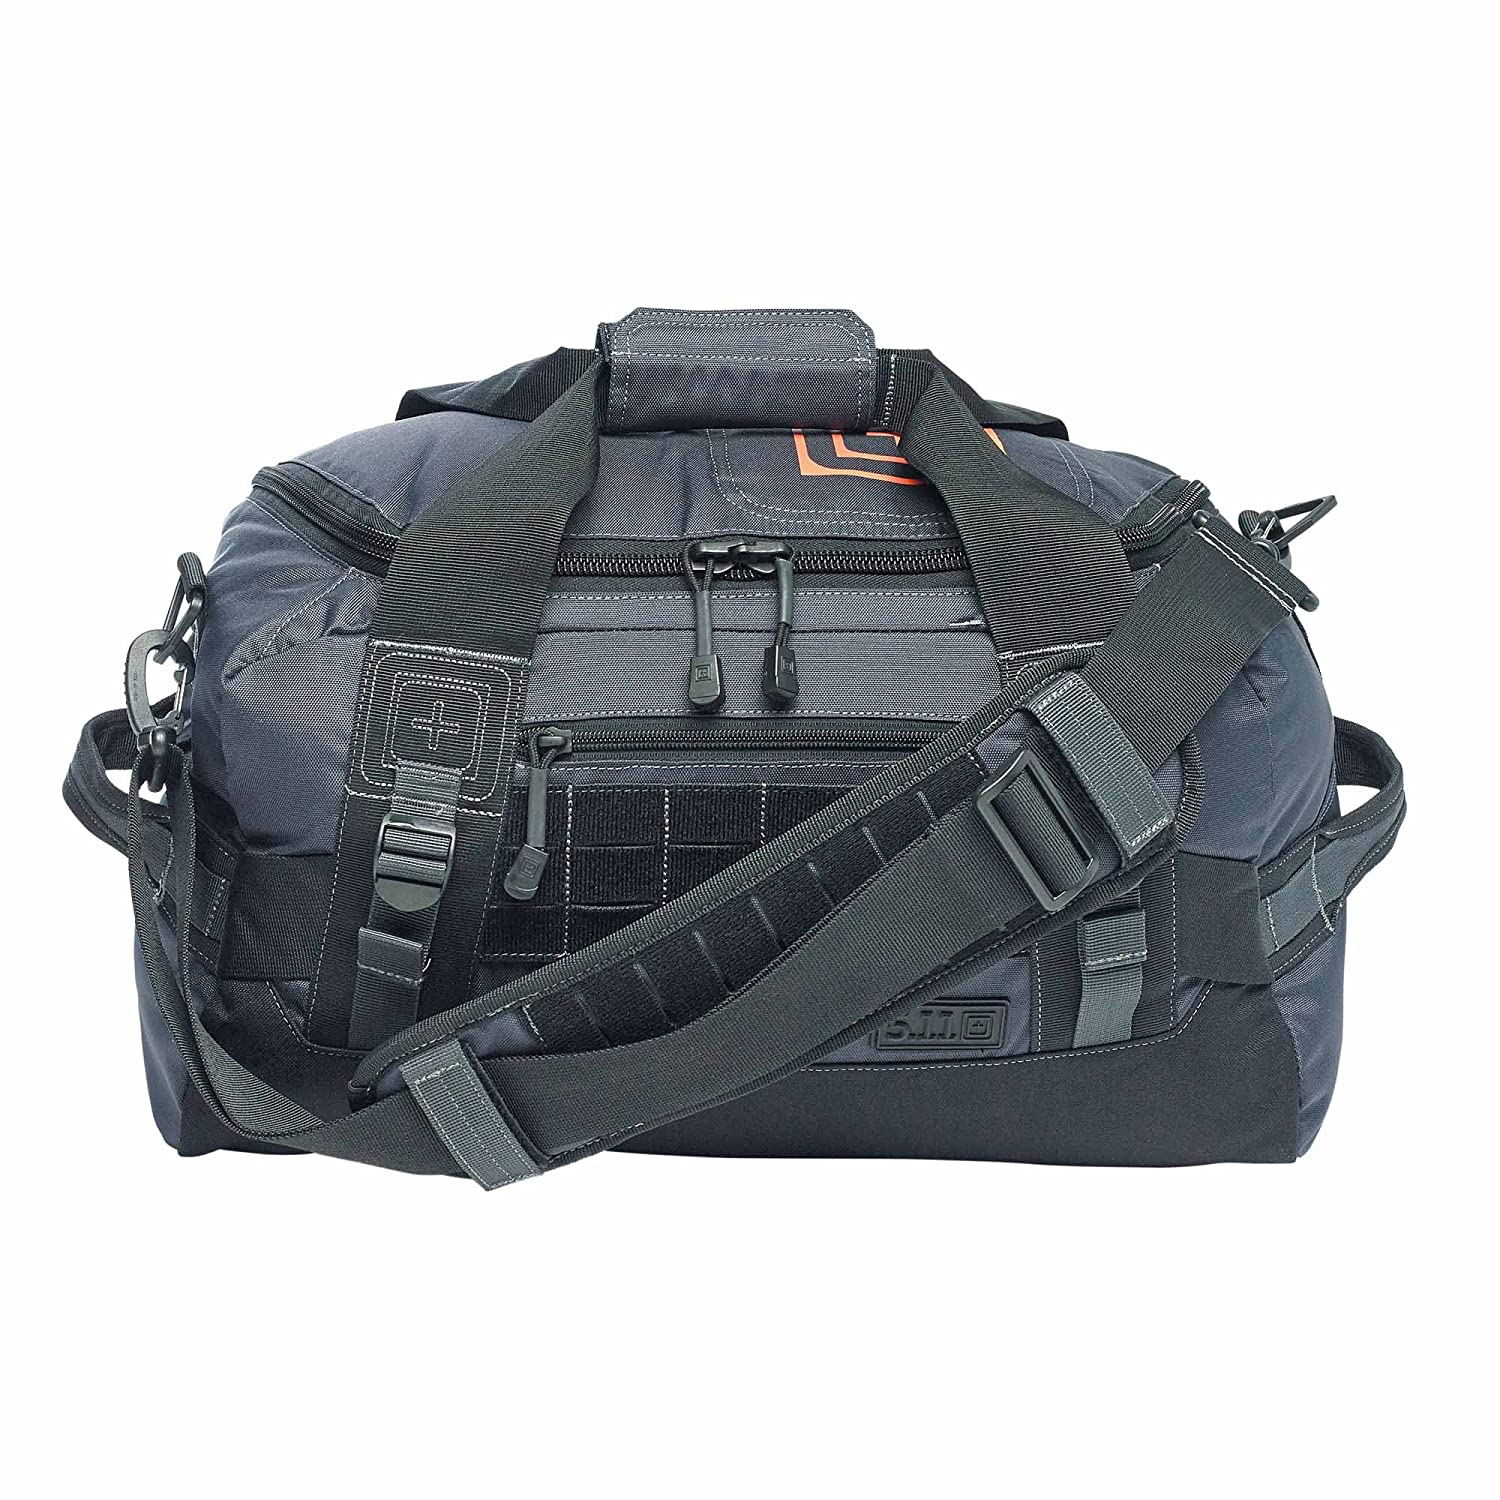 5.11 Tactical NBT Duffle Bag